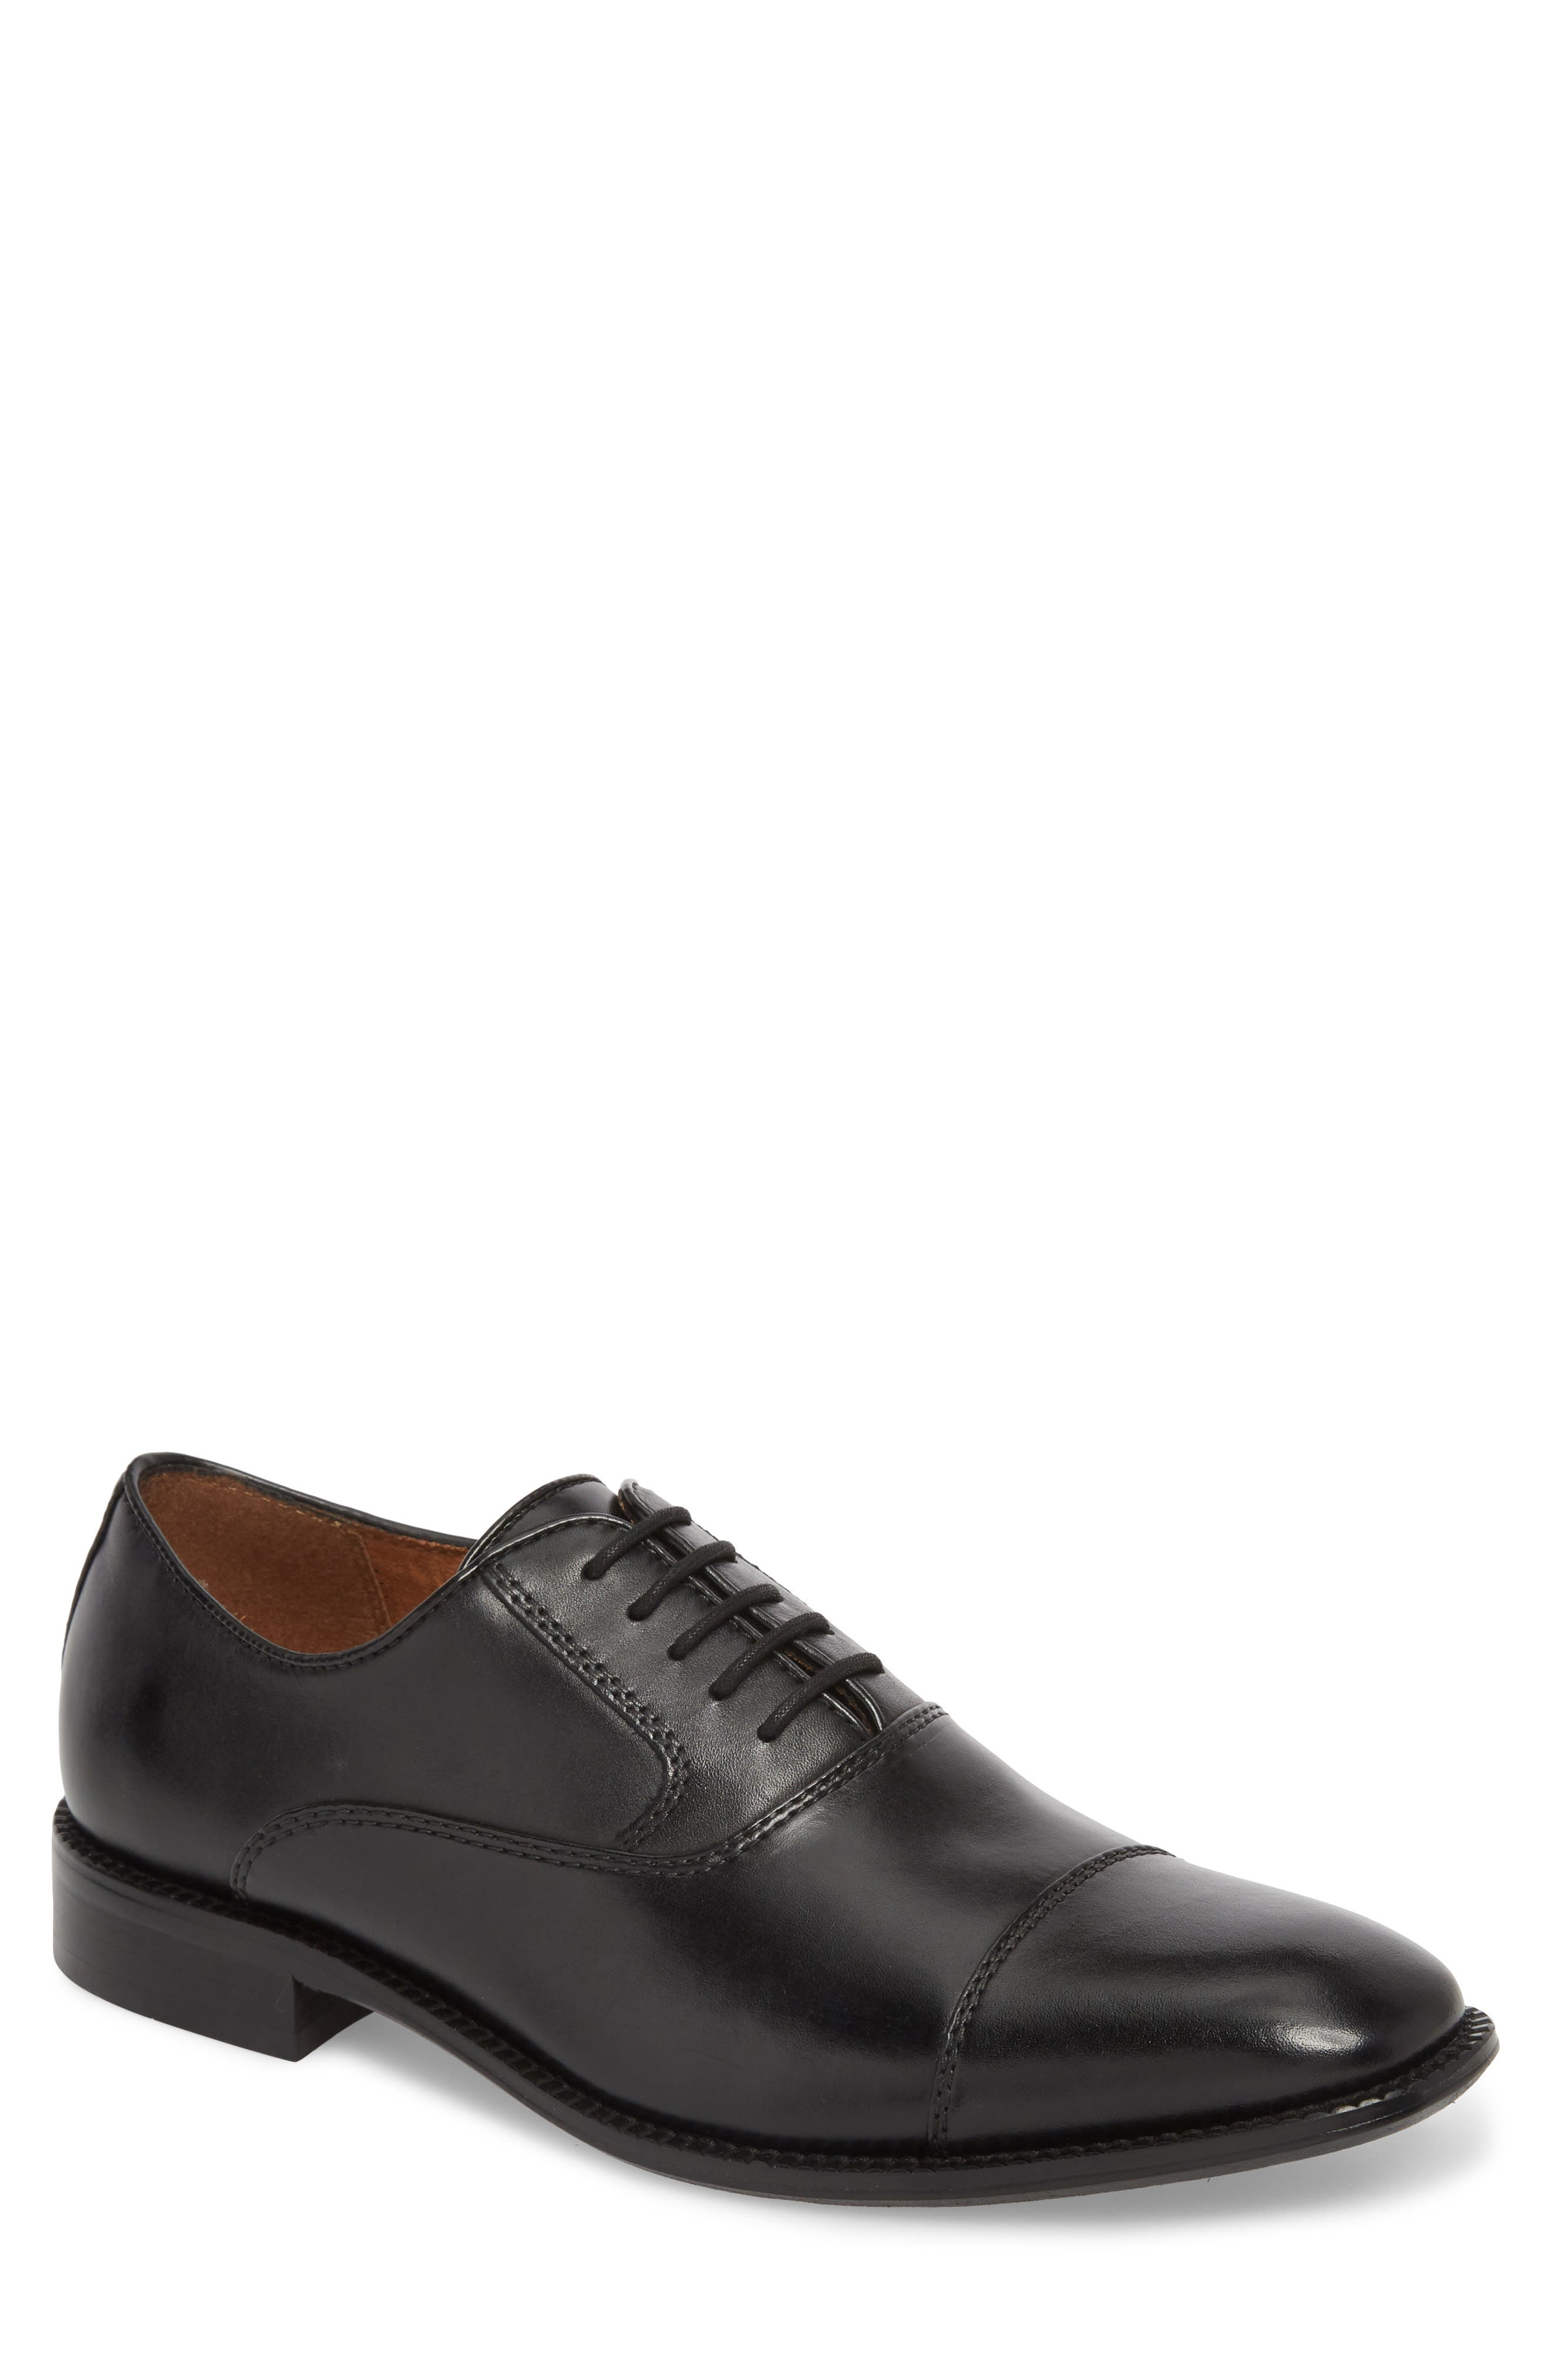 KENNETH COLE NEW YORK, Dice Cap Toe Oxford, Main thumbnail 1, color, BLACK LEATHER